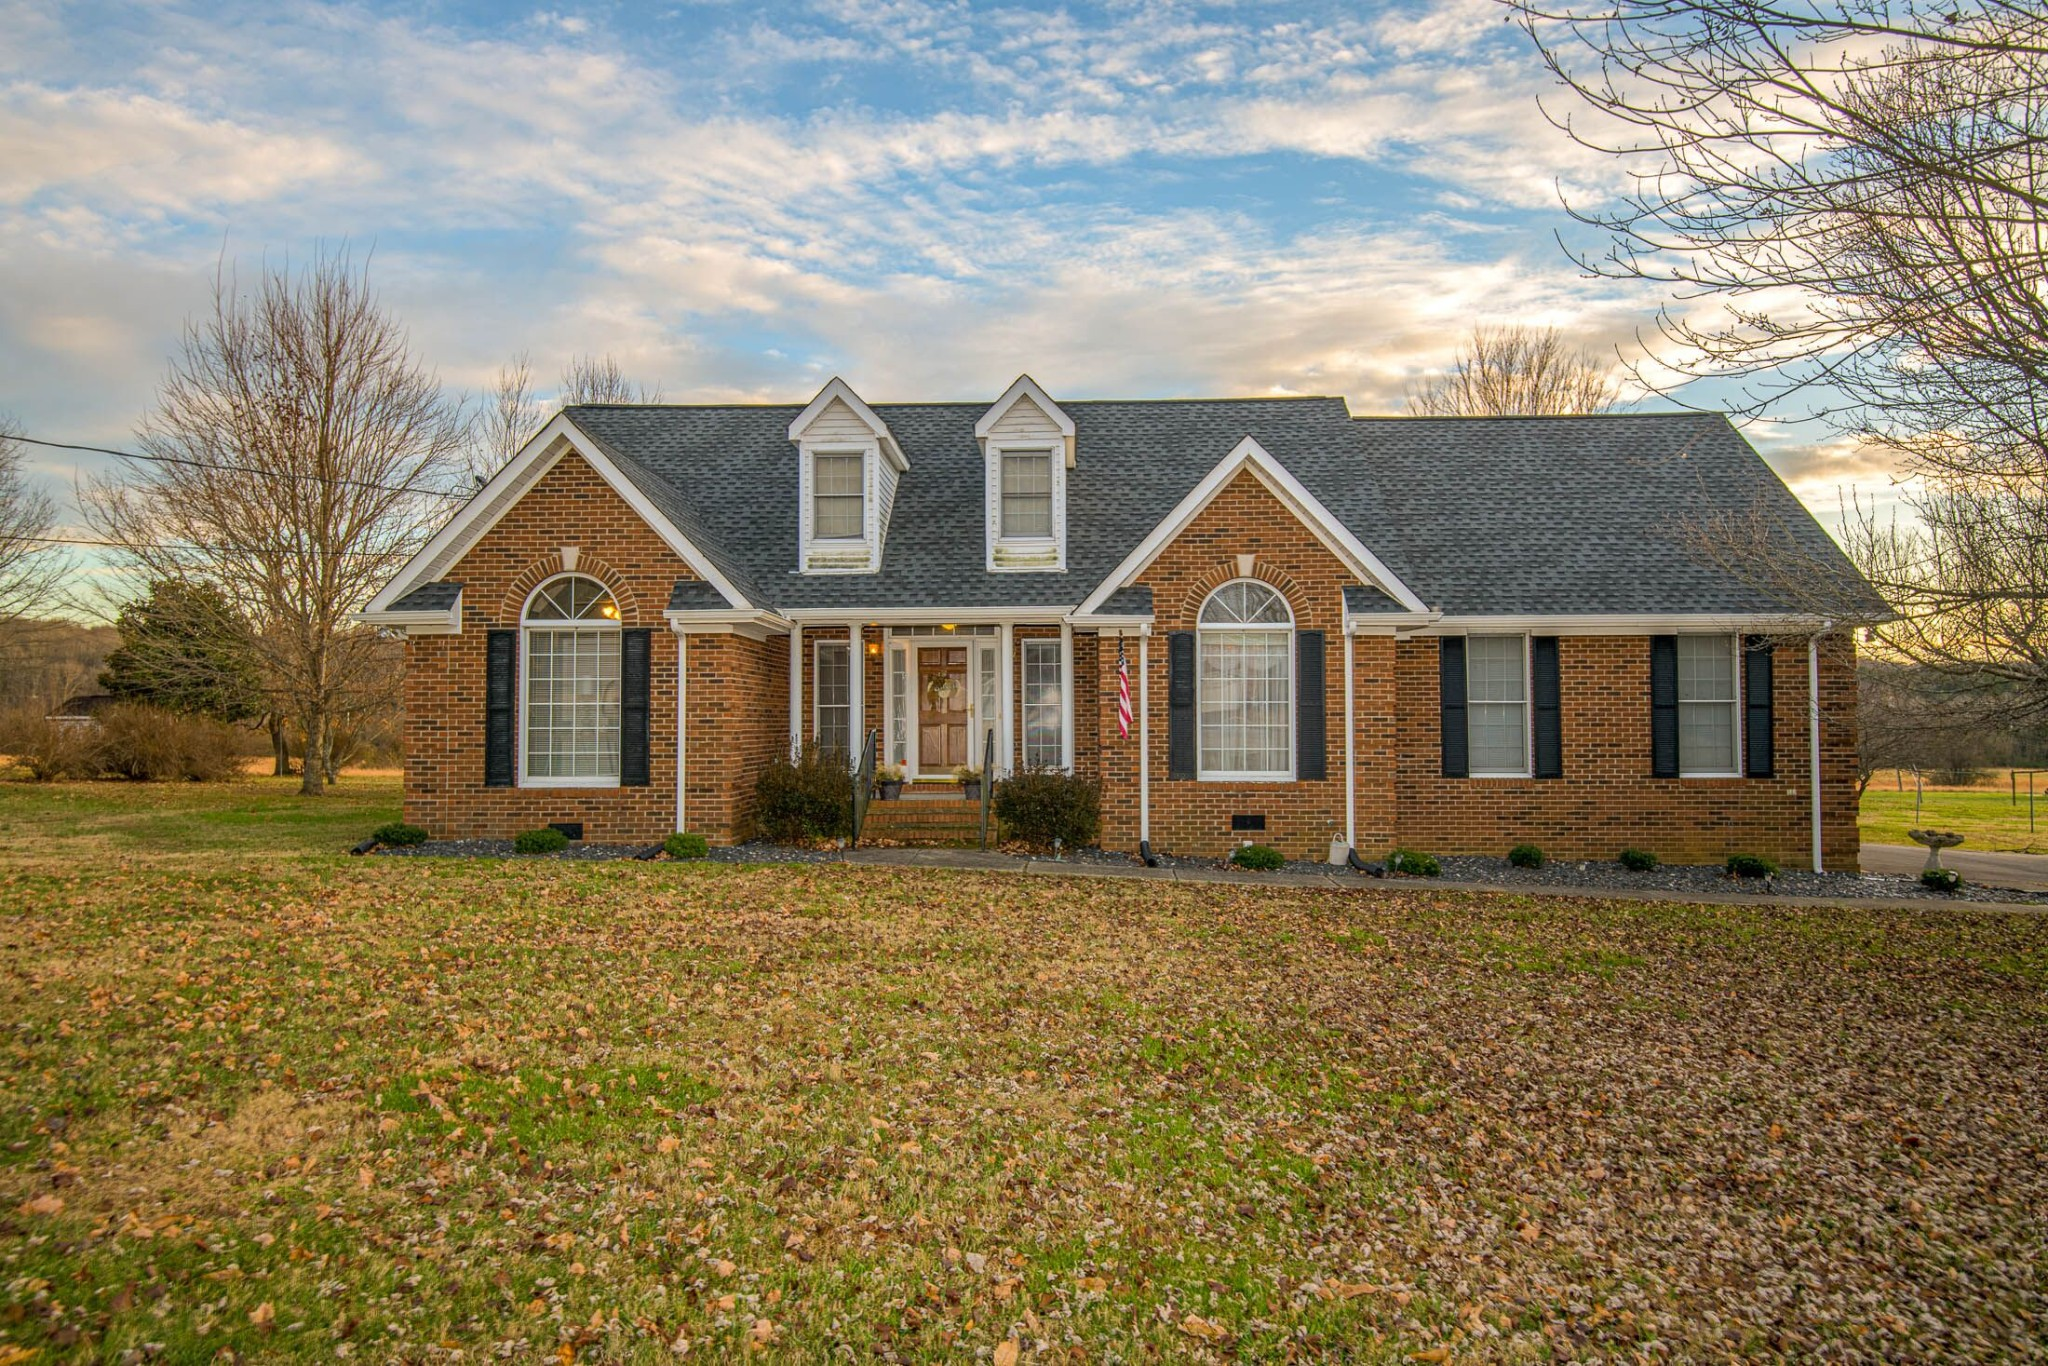 2019 Jennifer Ln, Lewisburg, TN 37091 - Lewisburg, TN real estate listing